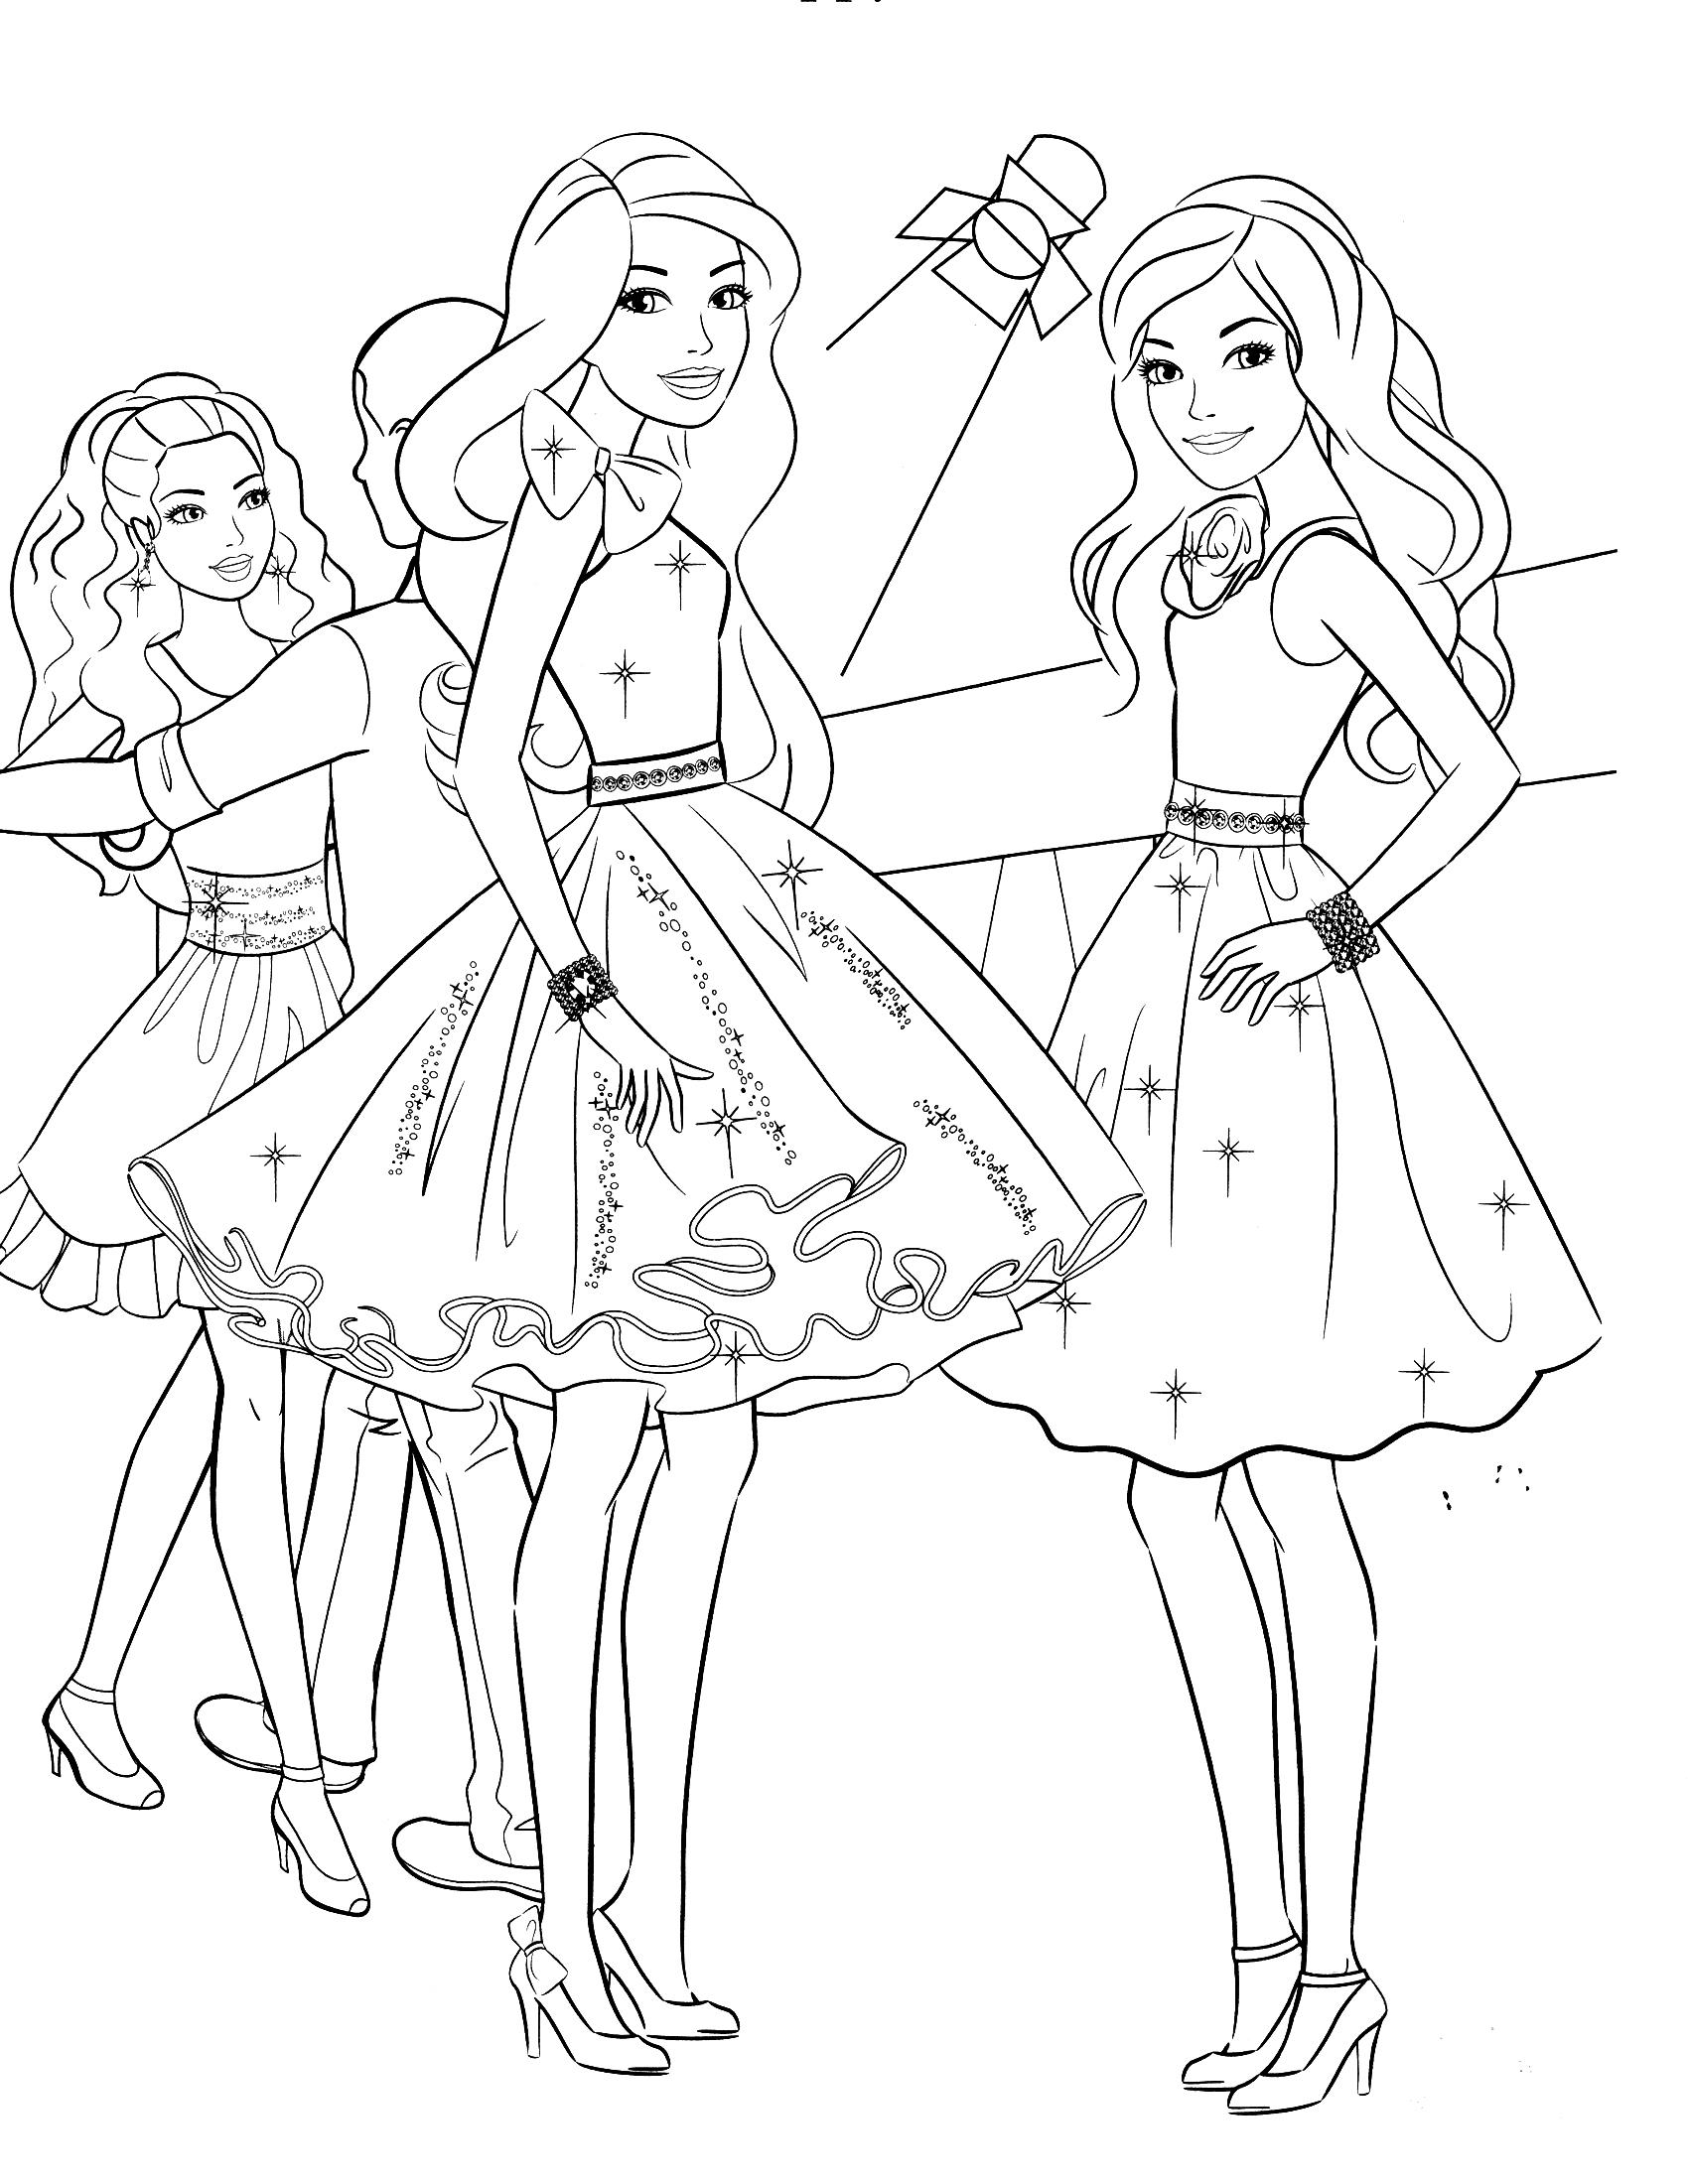 barbie colouring in picture barbie coloring pages picture colouring in barbie